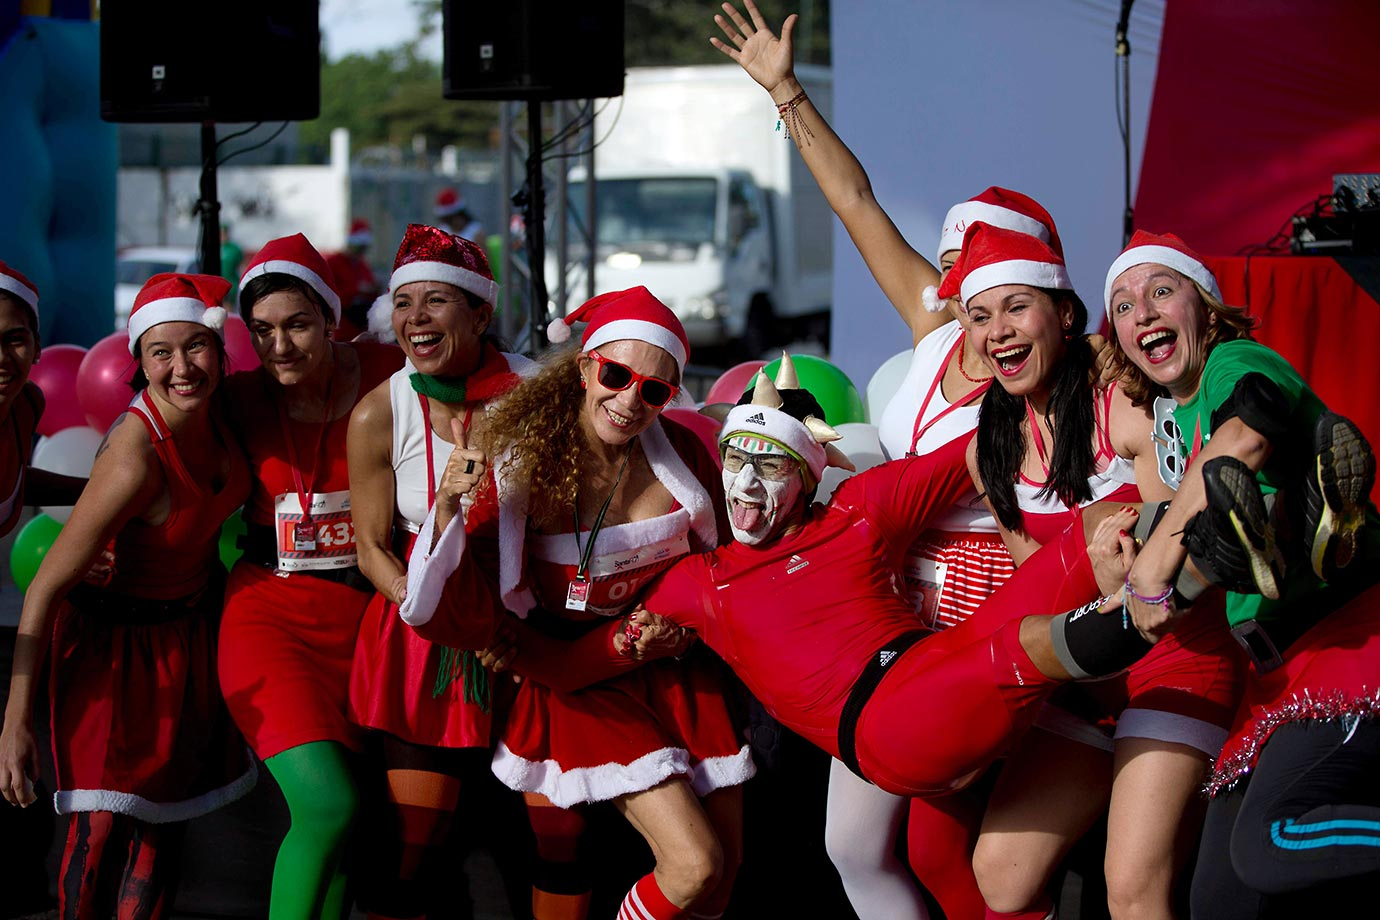 Runners dressed as Santa pose for a photo after finishing the Santa Claus Run in Caracas, Venezuela.